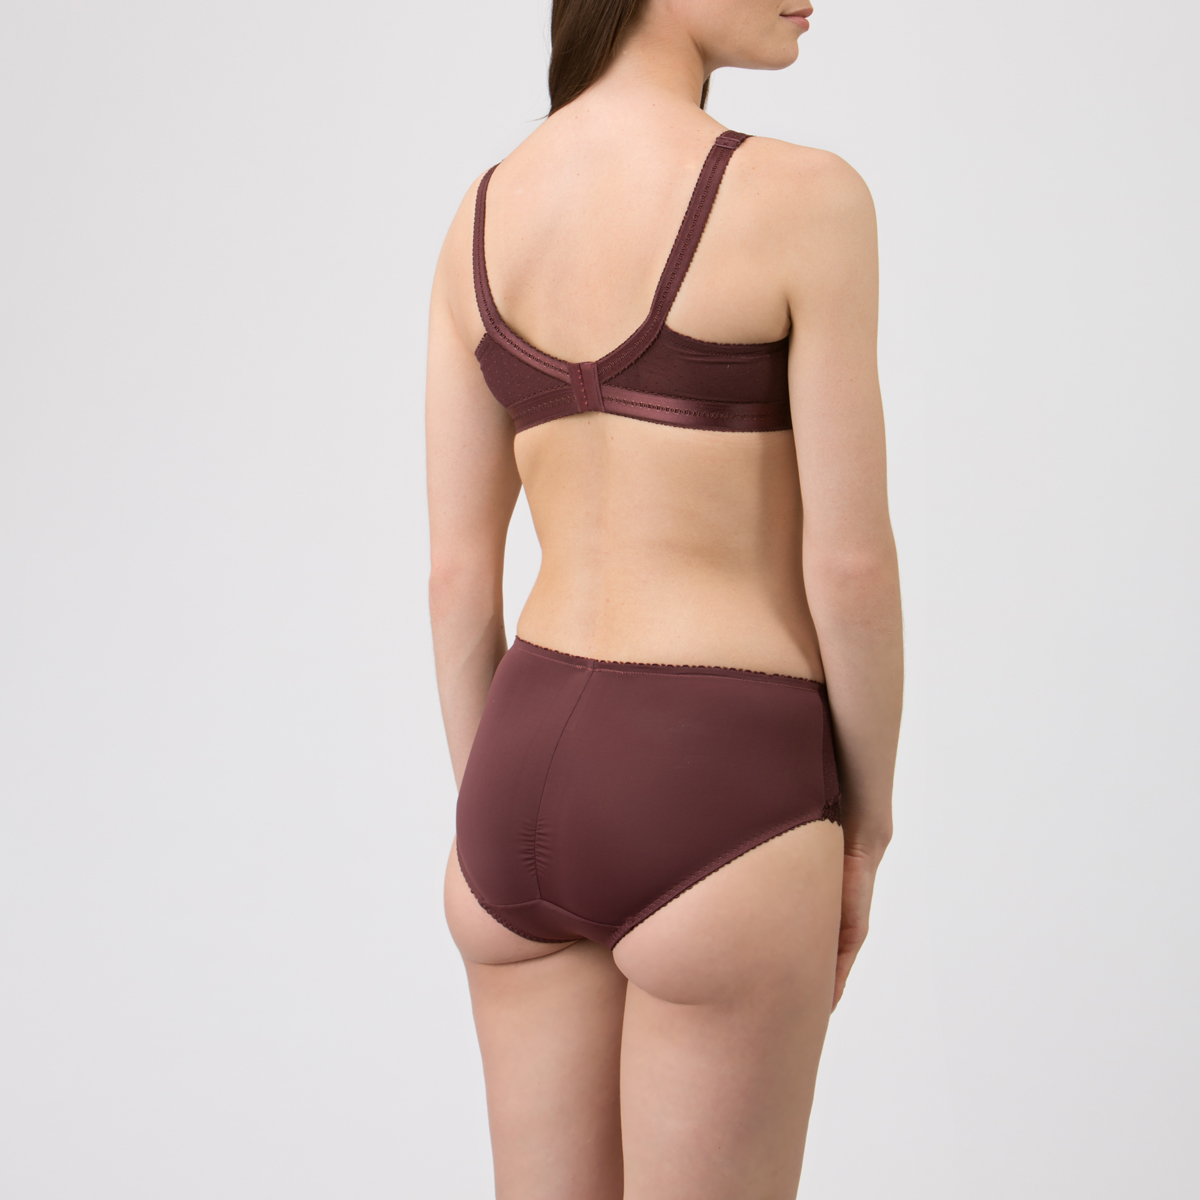 Non-wired Bra in Brown – Classic Lace Support-PLAYTEX